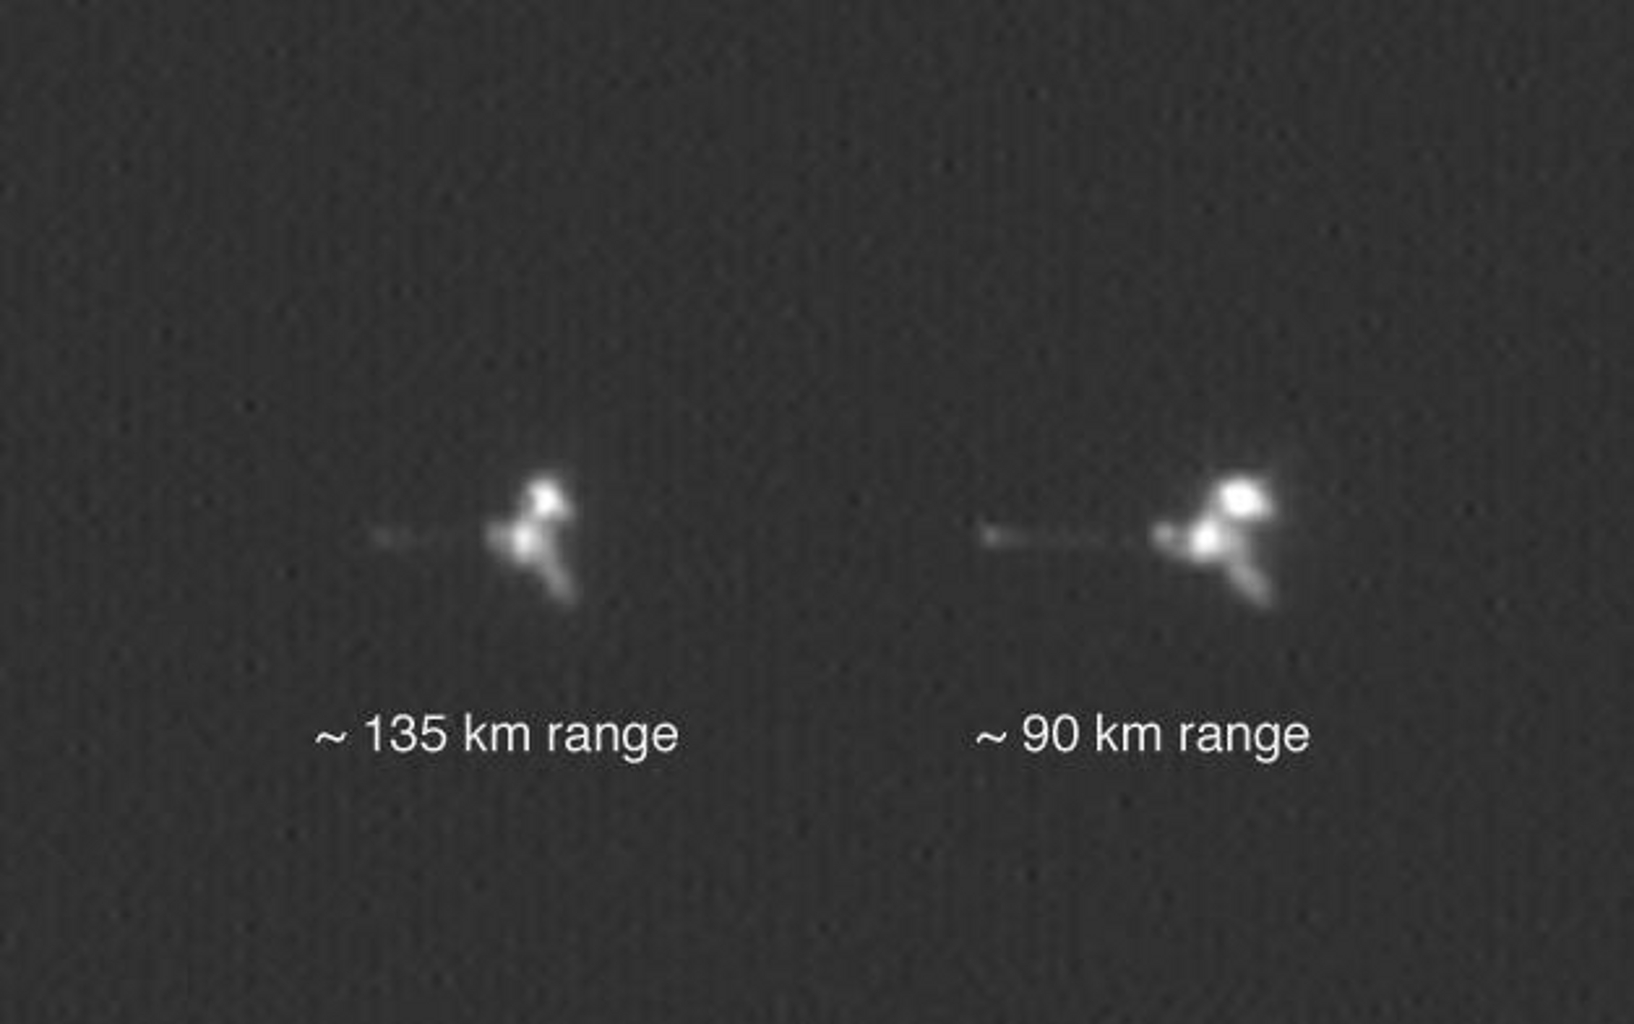 Space Images | Mars Odyssey from Two Distances in One Image